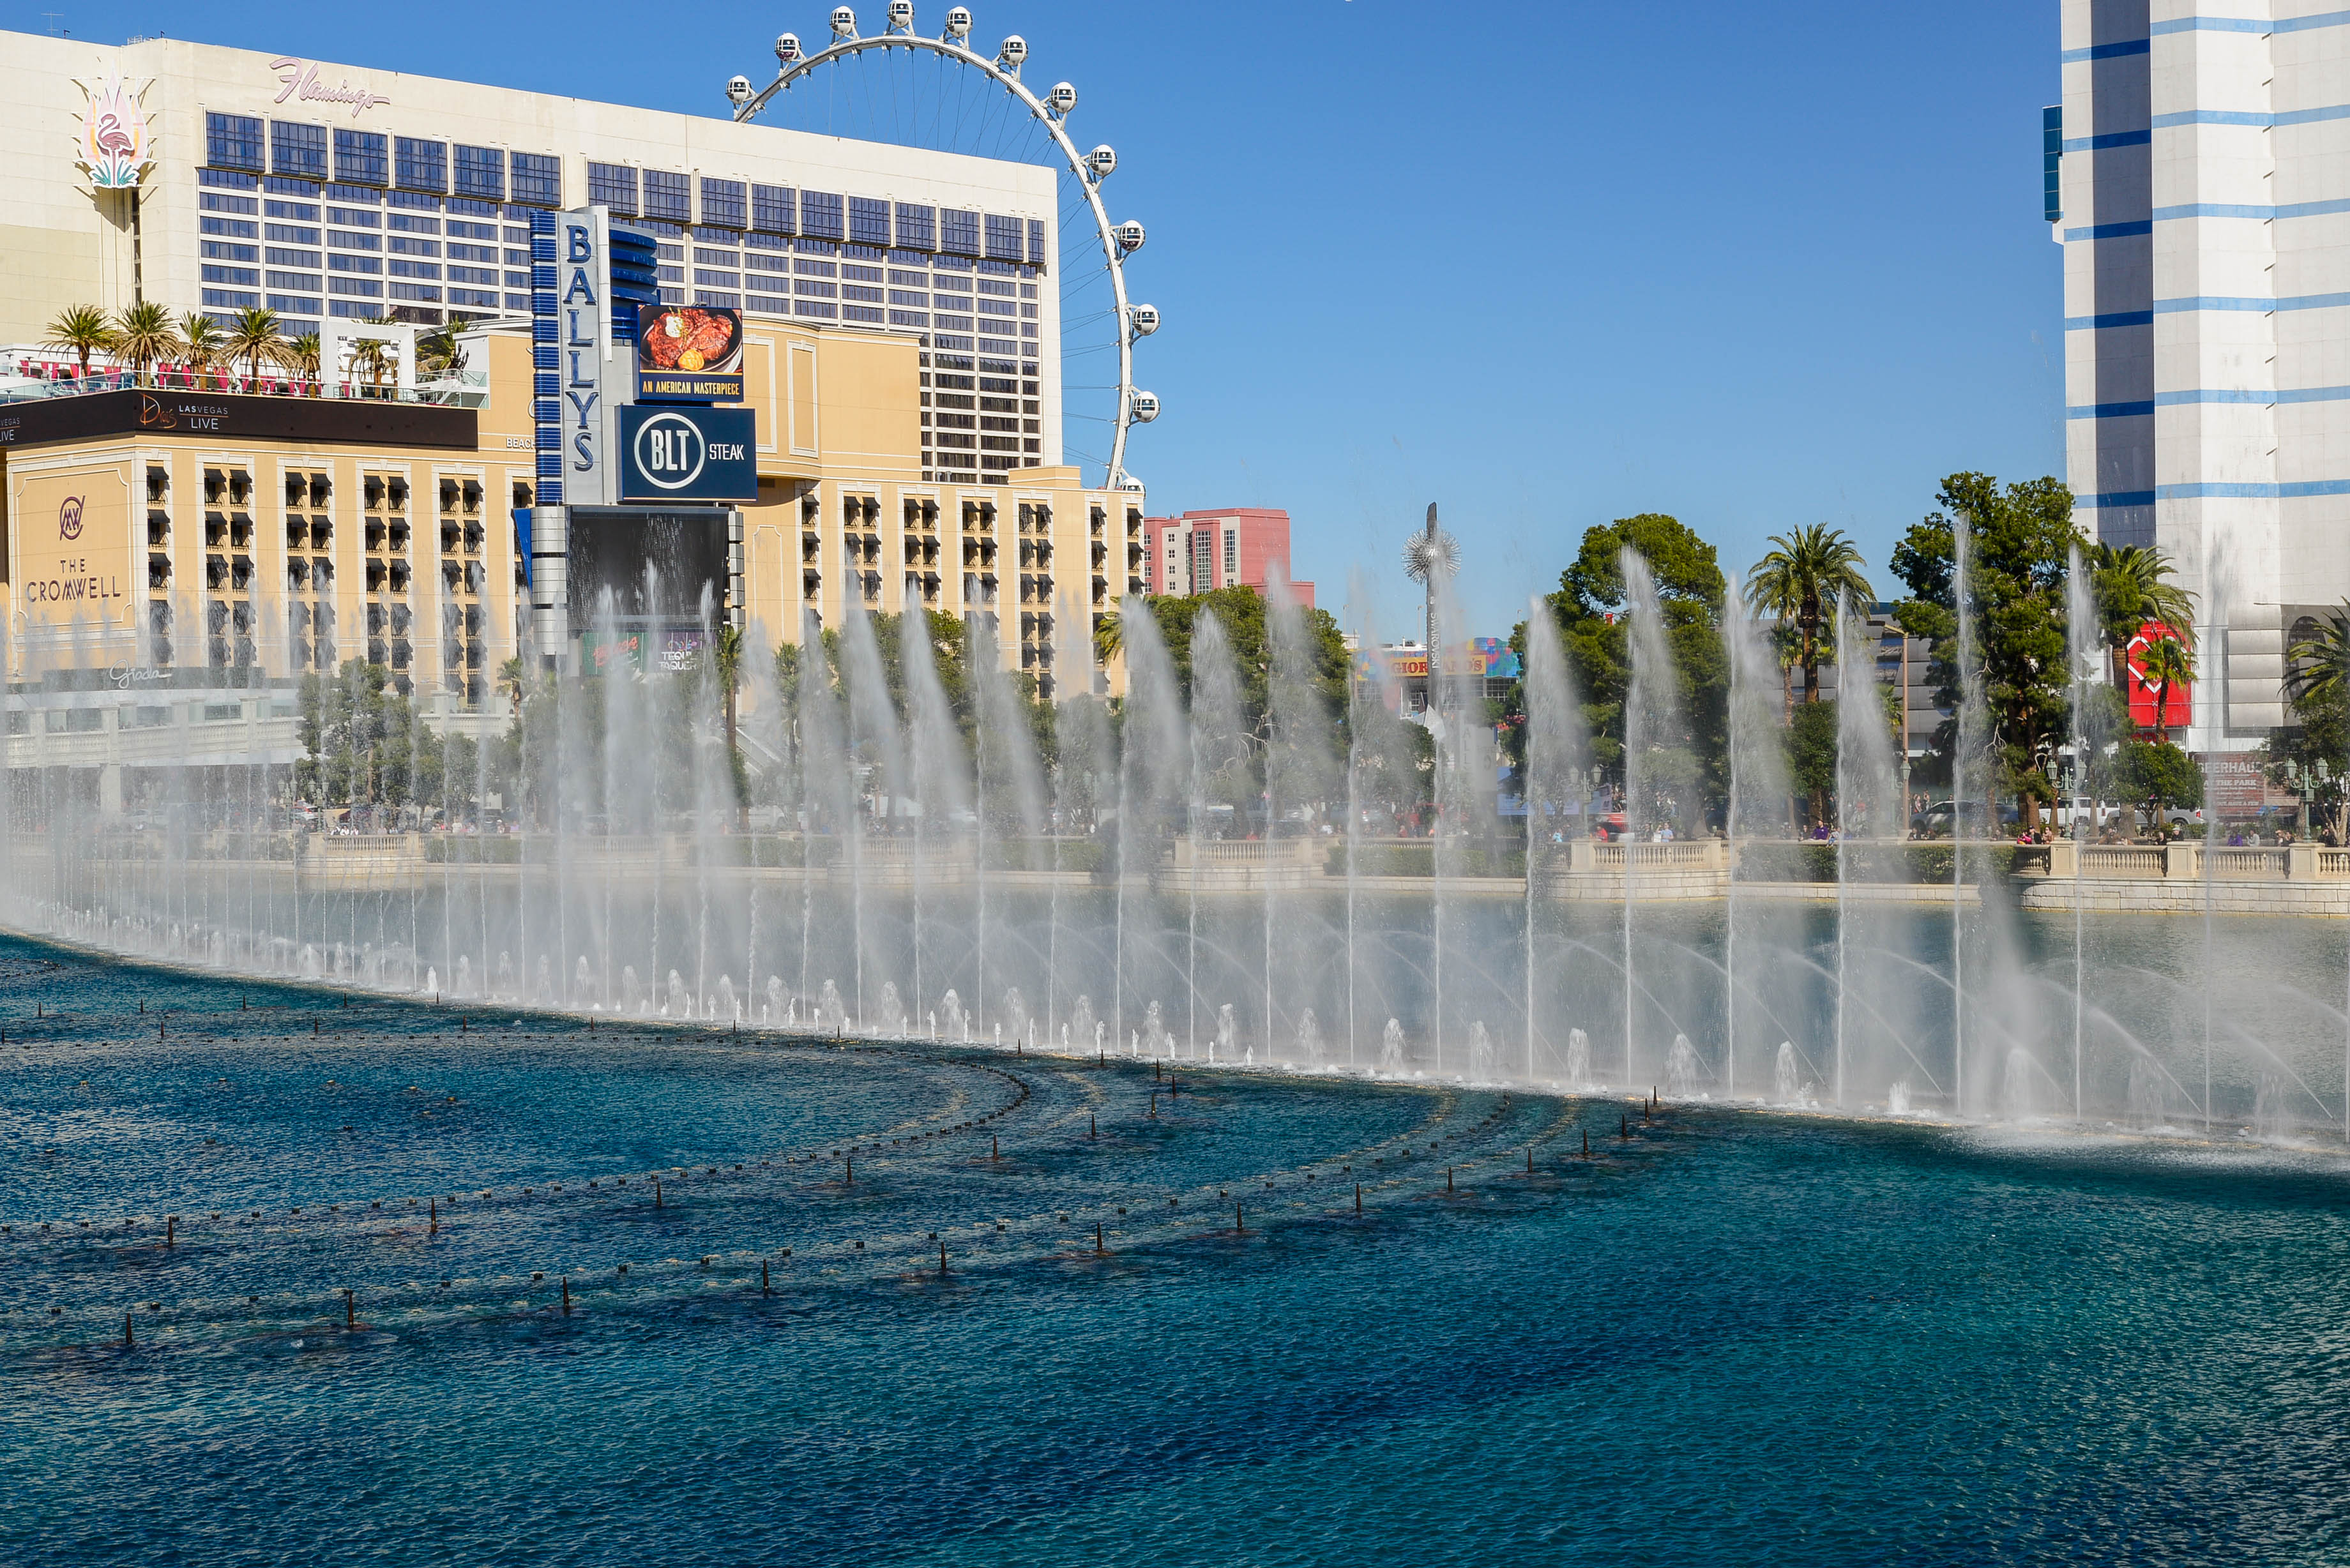 The Fountains of Bellagio, Las Vegas